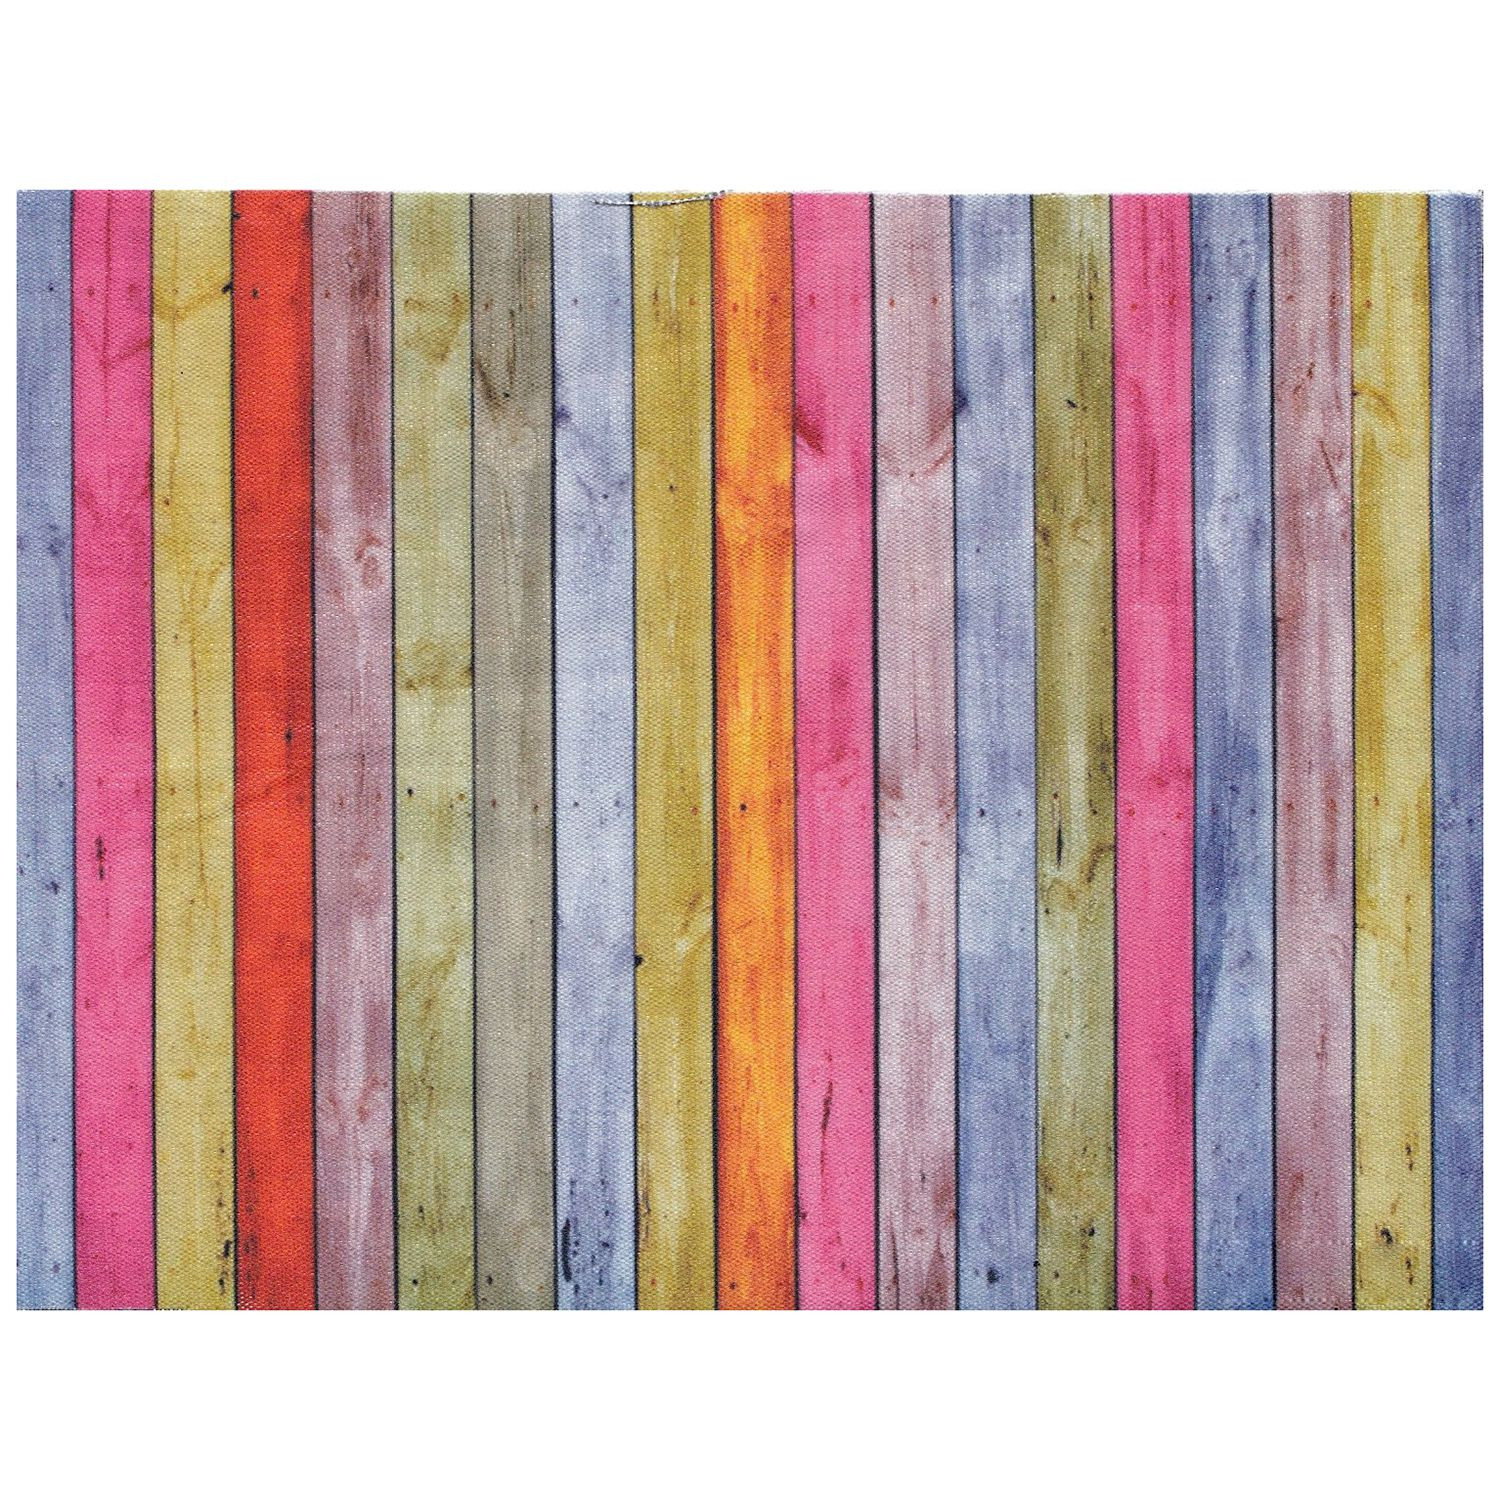 5x3ft Children Photography Backdrops for Photographers Collapsible Colorful Wood Wall Photo Backdrop